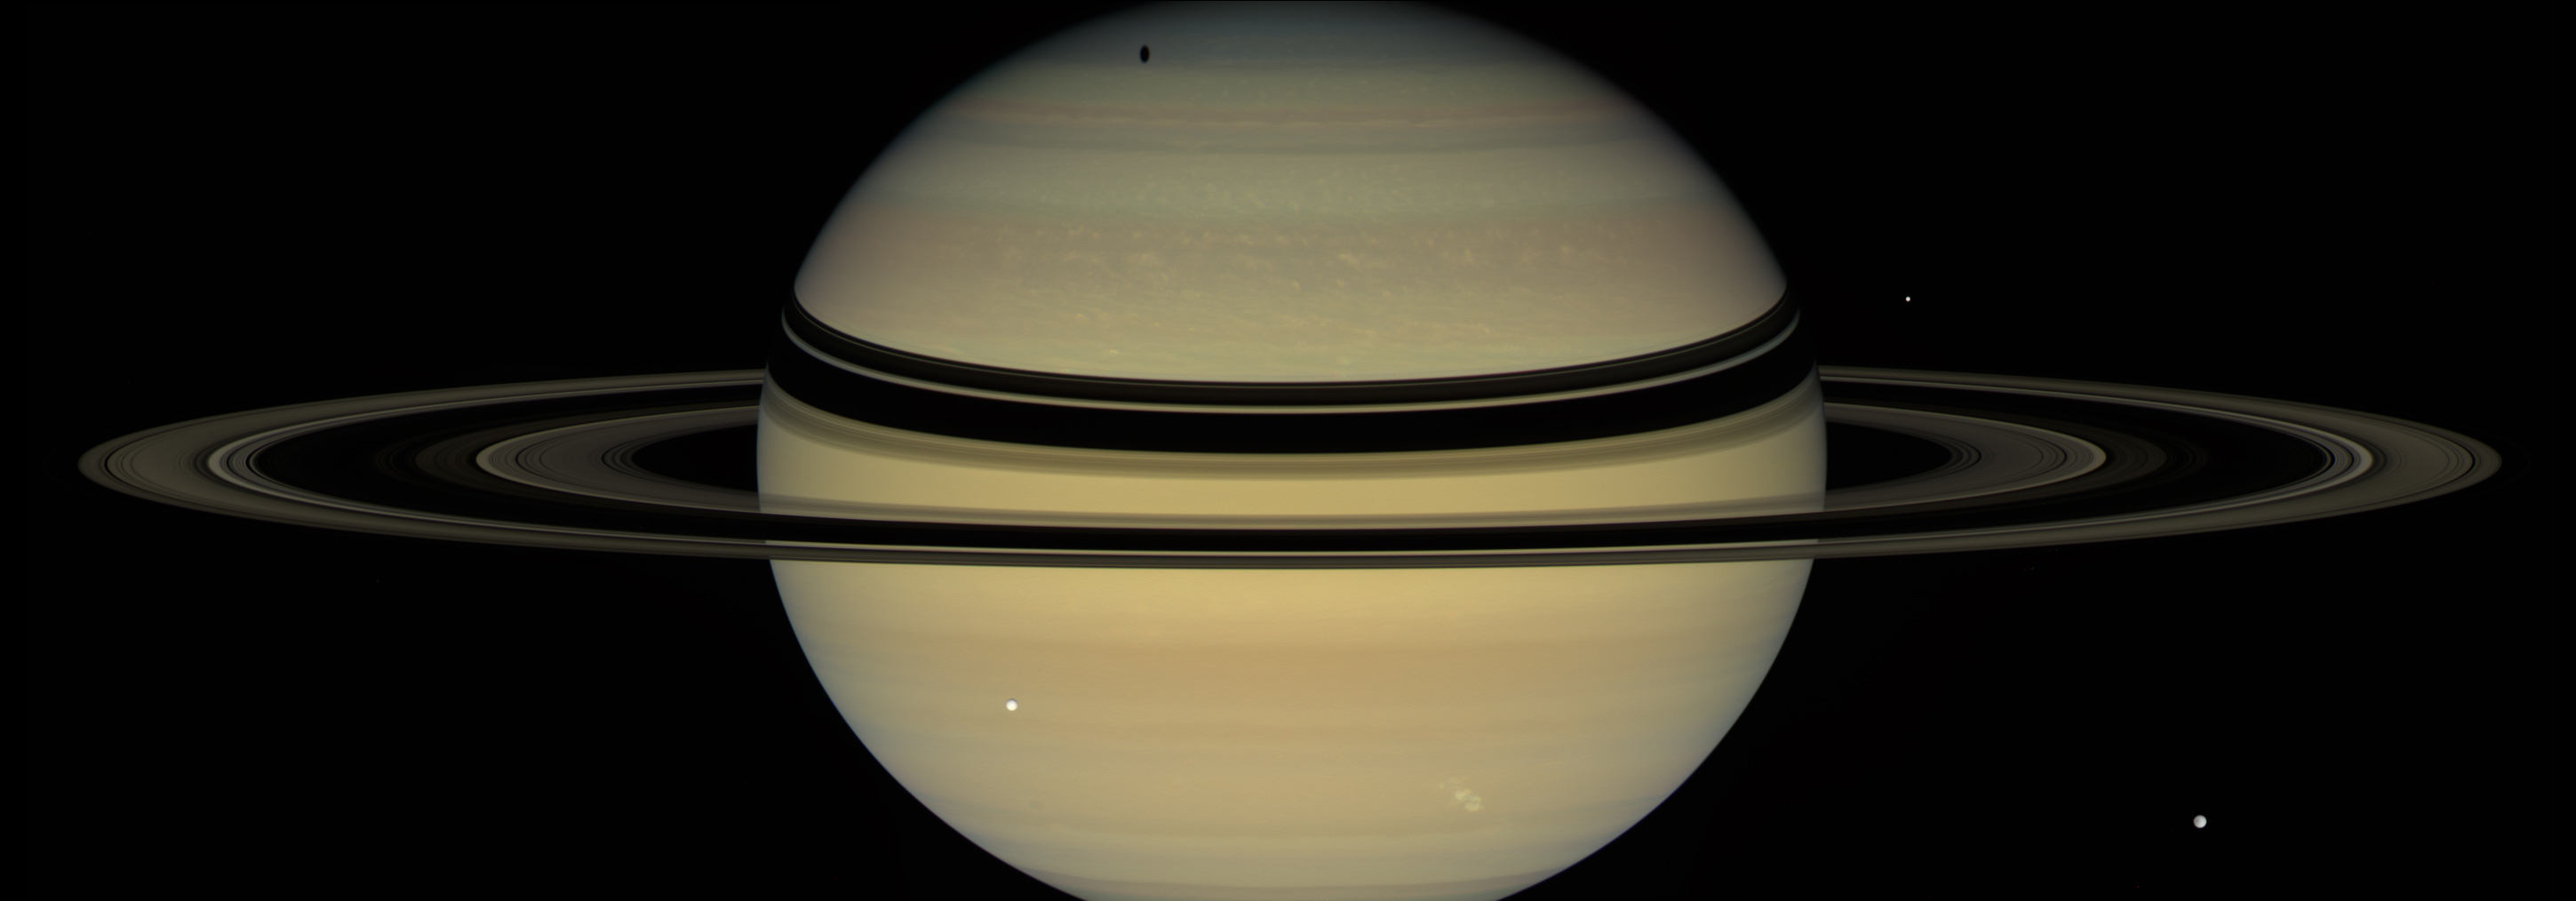 wide view of saturn and its rings with relatively smaller moons visible